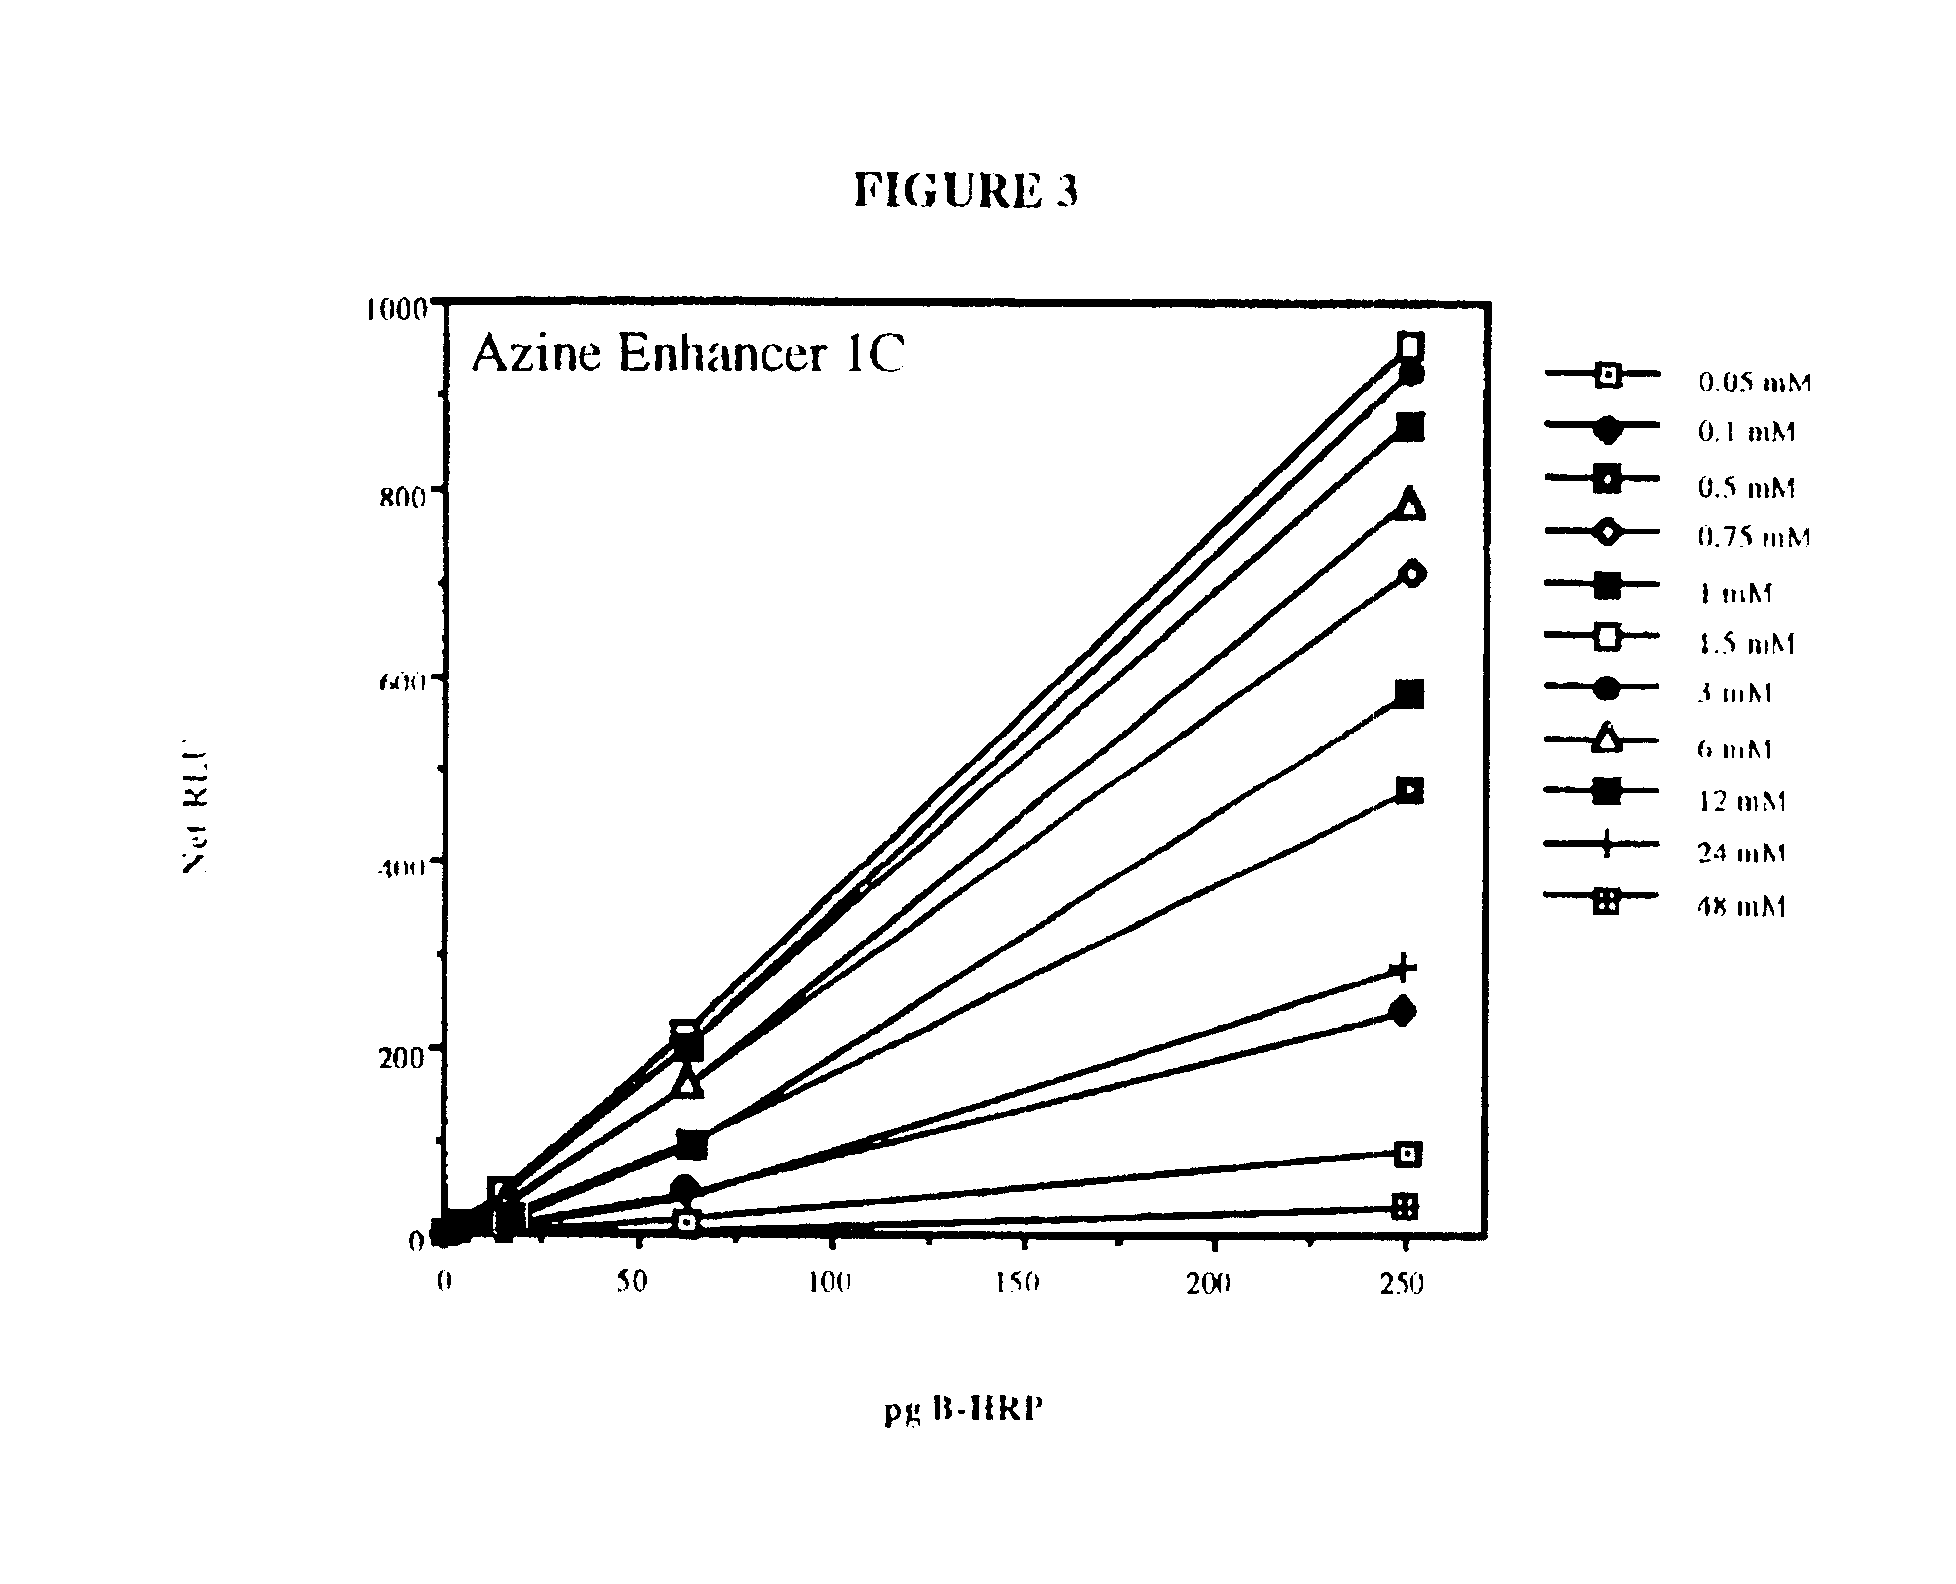 peroxidase enzyme assay protocol Laccase assay protocol i pre-prep prepare 50 mm working solution of sodium acetate buffer, ph 50 (or at the ph of your soil) by mixing 50 ml 1m ph adjusted sodium acetate stock solution with 950ml h2o.